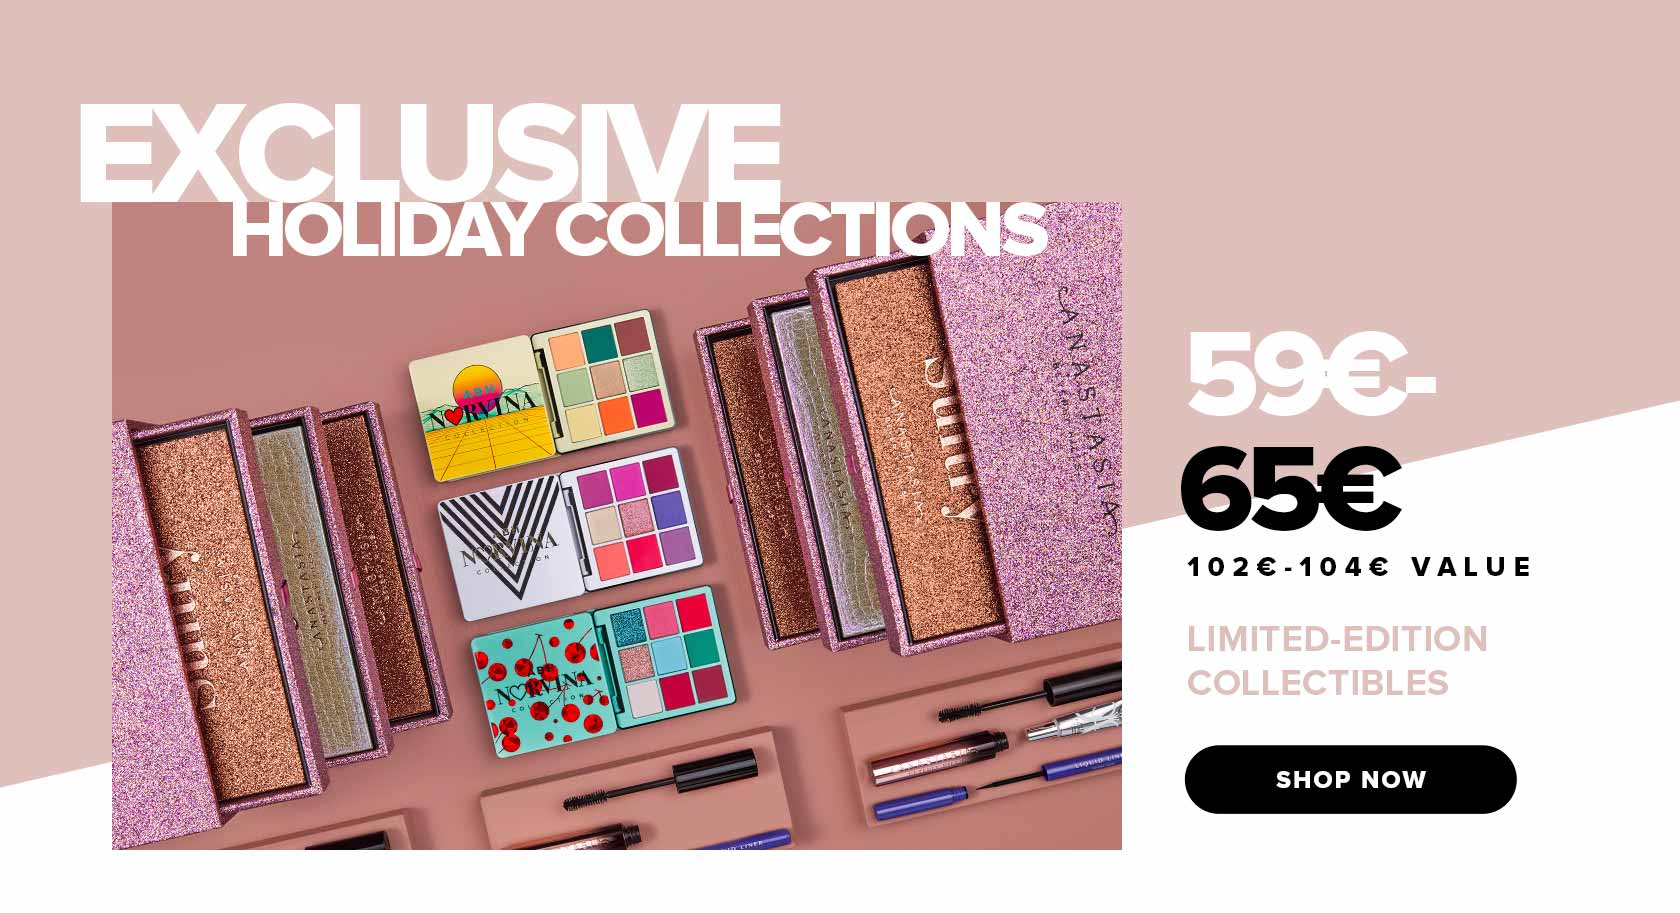 Exclusive Holiday Collections and Limited Edition Sets